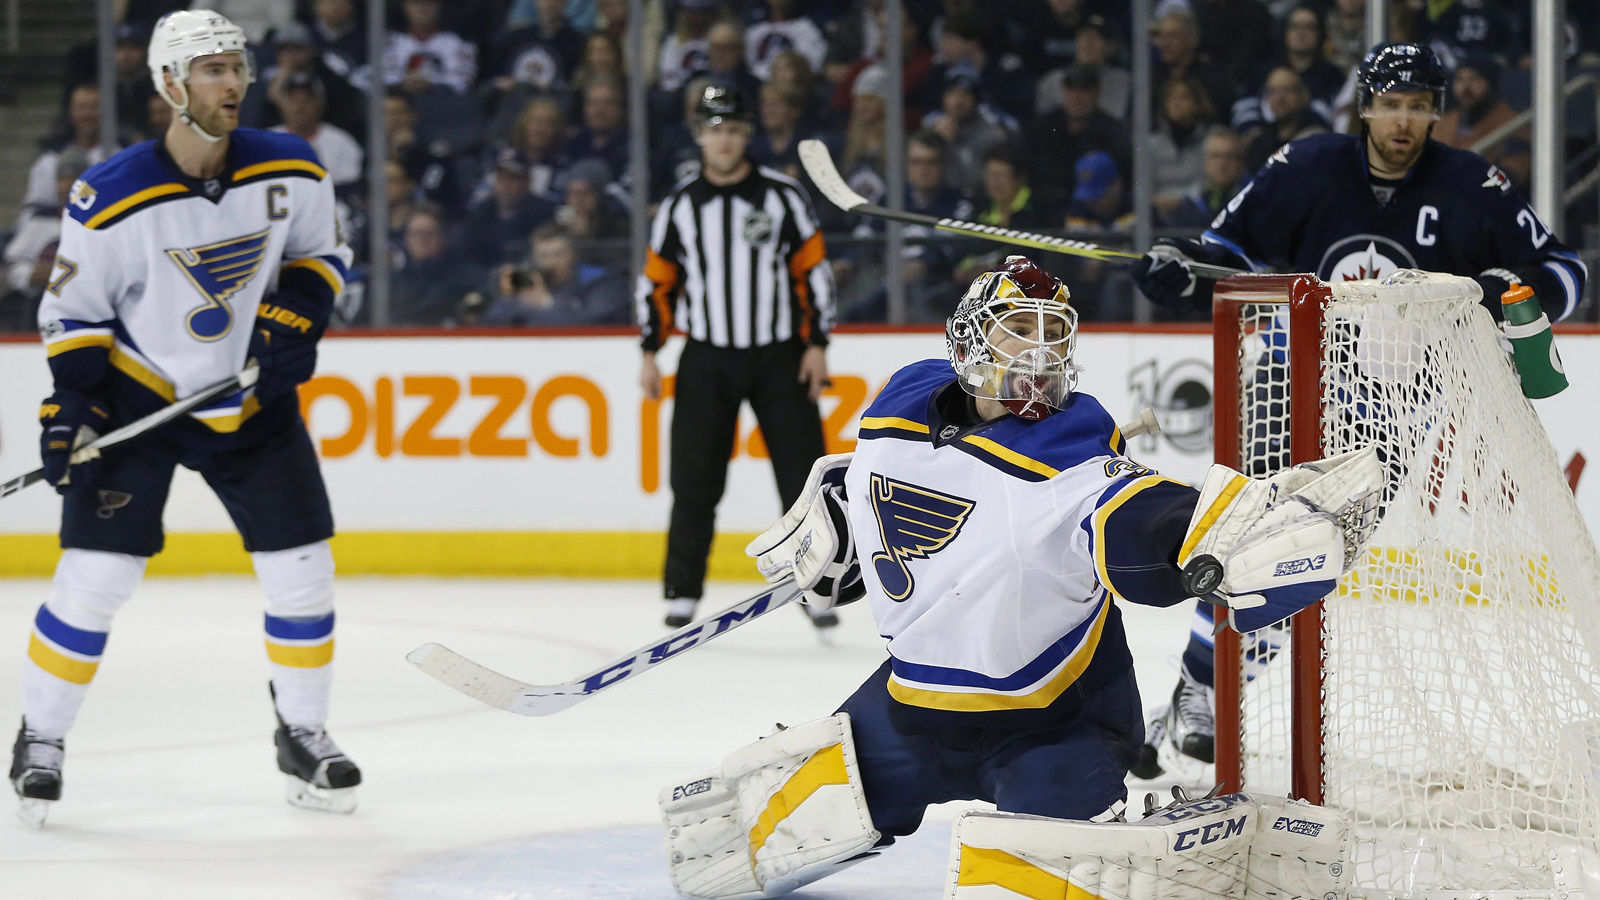 Allen's reset over, Blues send Copley back to AHL